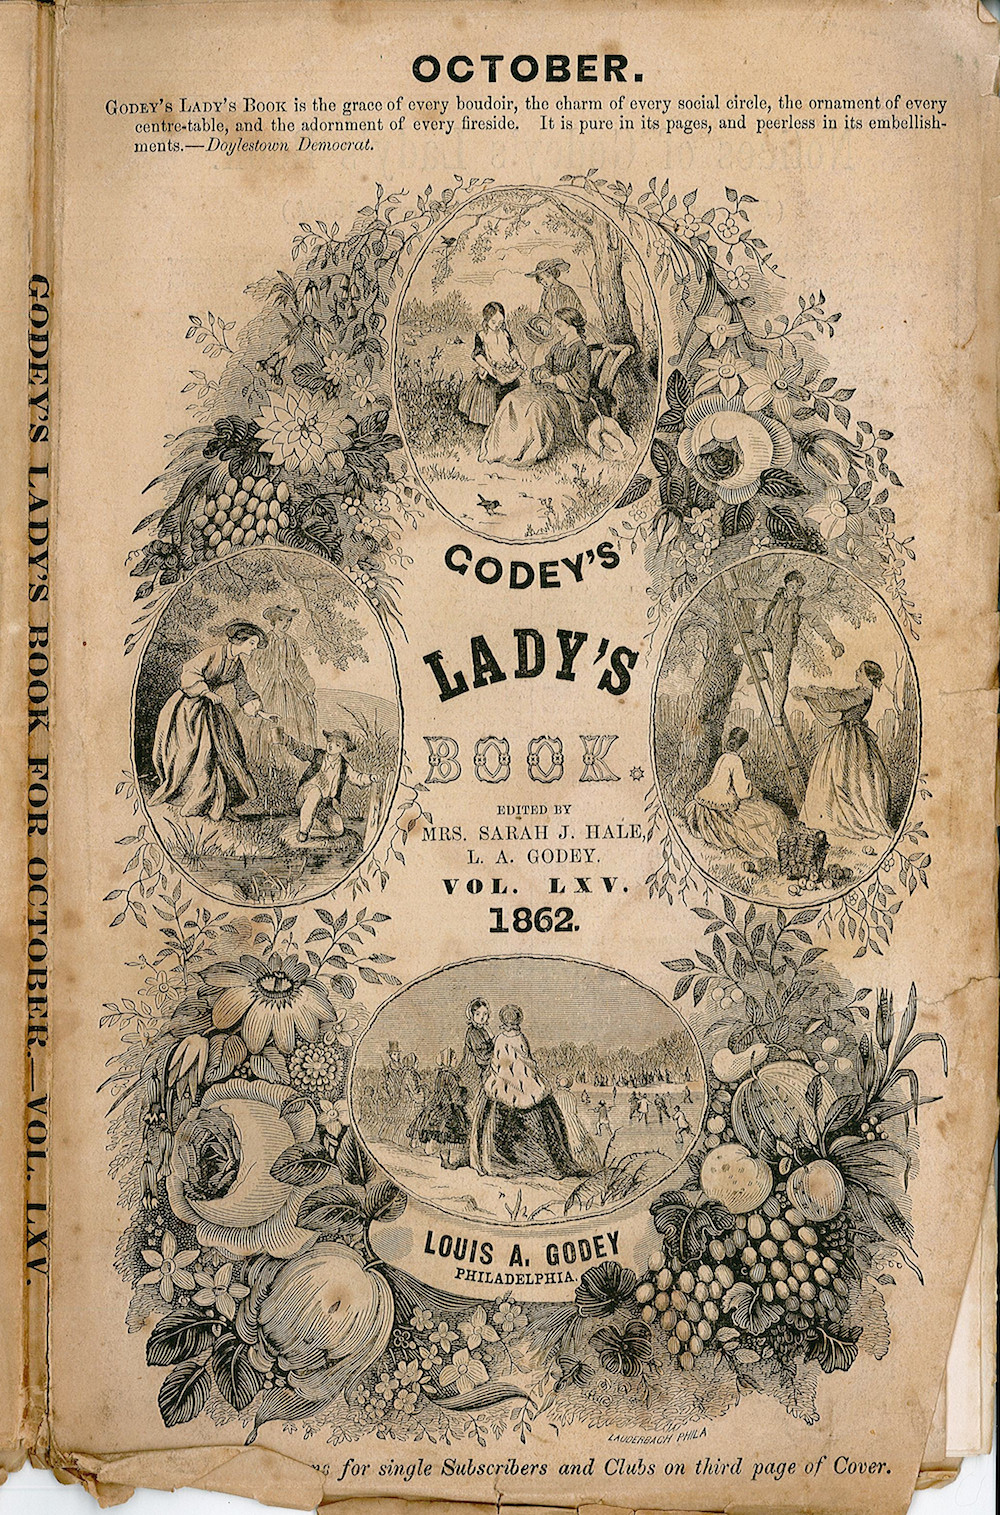 Godey's Lady's Book and Magazine, Vol. 64, June 1862.